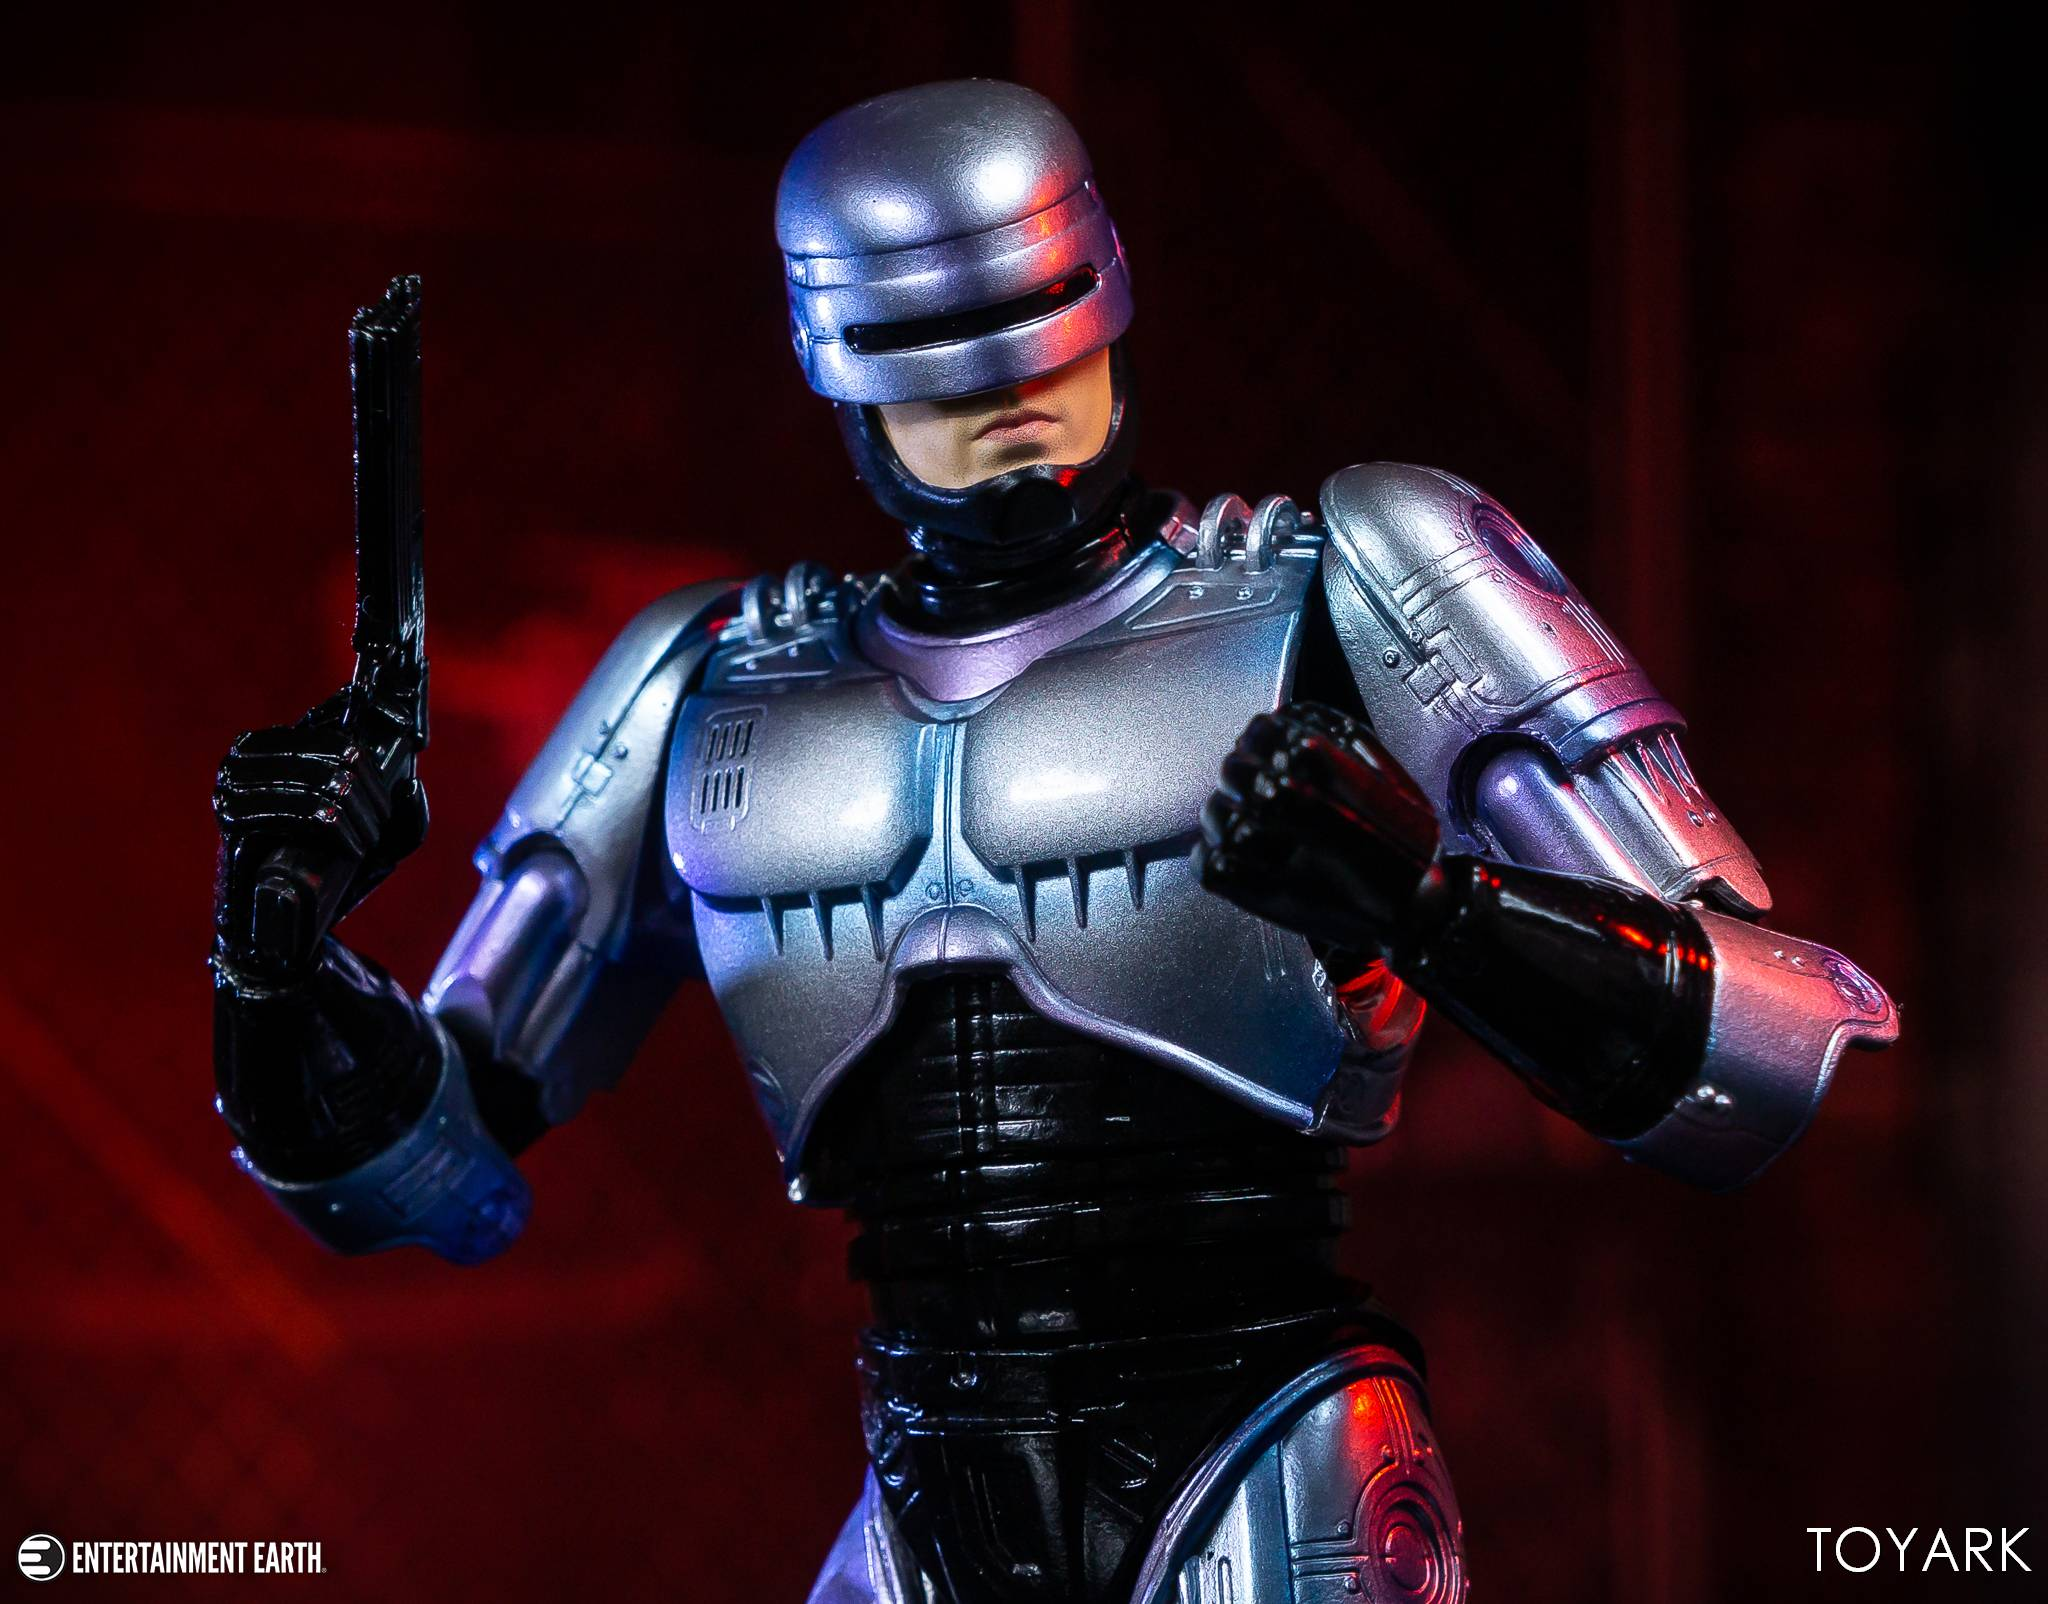 https://news.toyark.com/wp-content/uploads/sites/4/2019/05/MAFEX-Robocop-2-Gallery-019.jpg